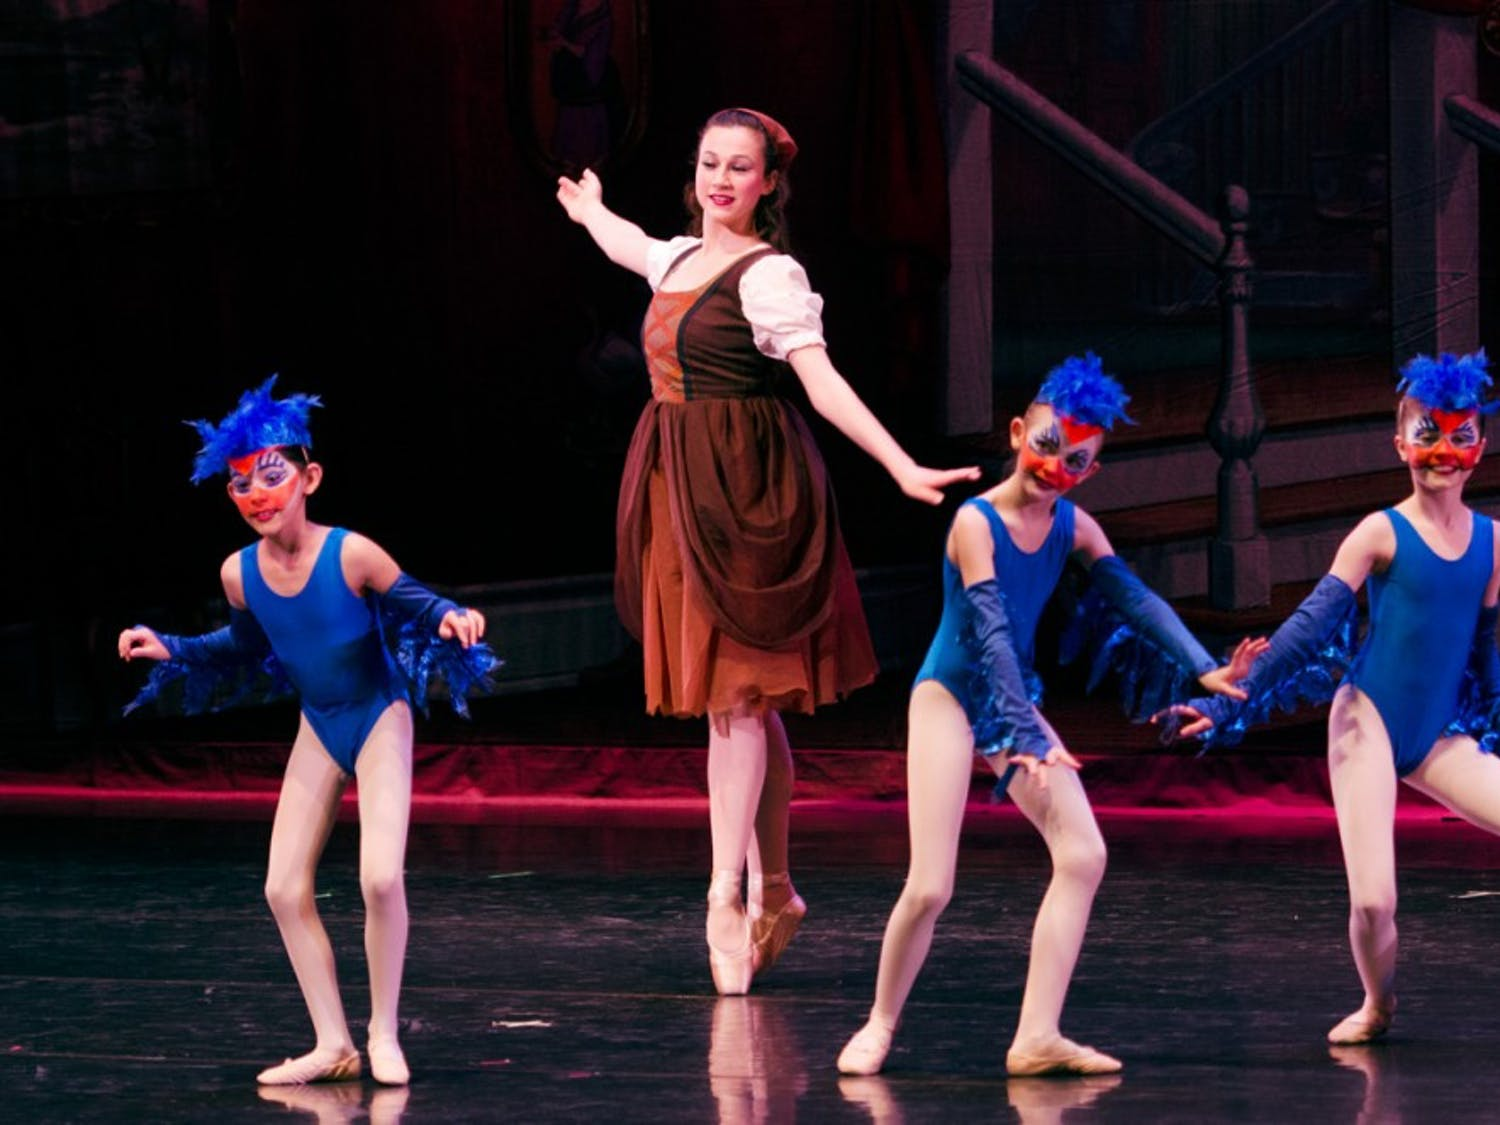 Cinderella performed by Western New York premier youth ballet, the Greater Buffalo Youth Ballet Company, and choreographed by Elizabeth DiStasio-Waddell in UB Center for the Arts on Saturday, March 28.